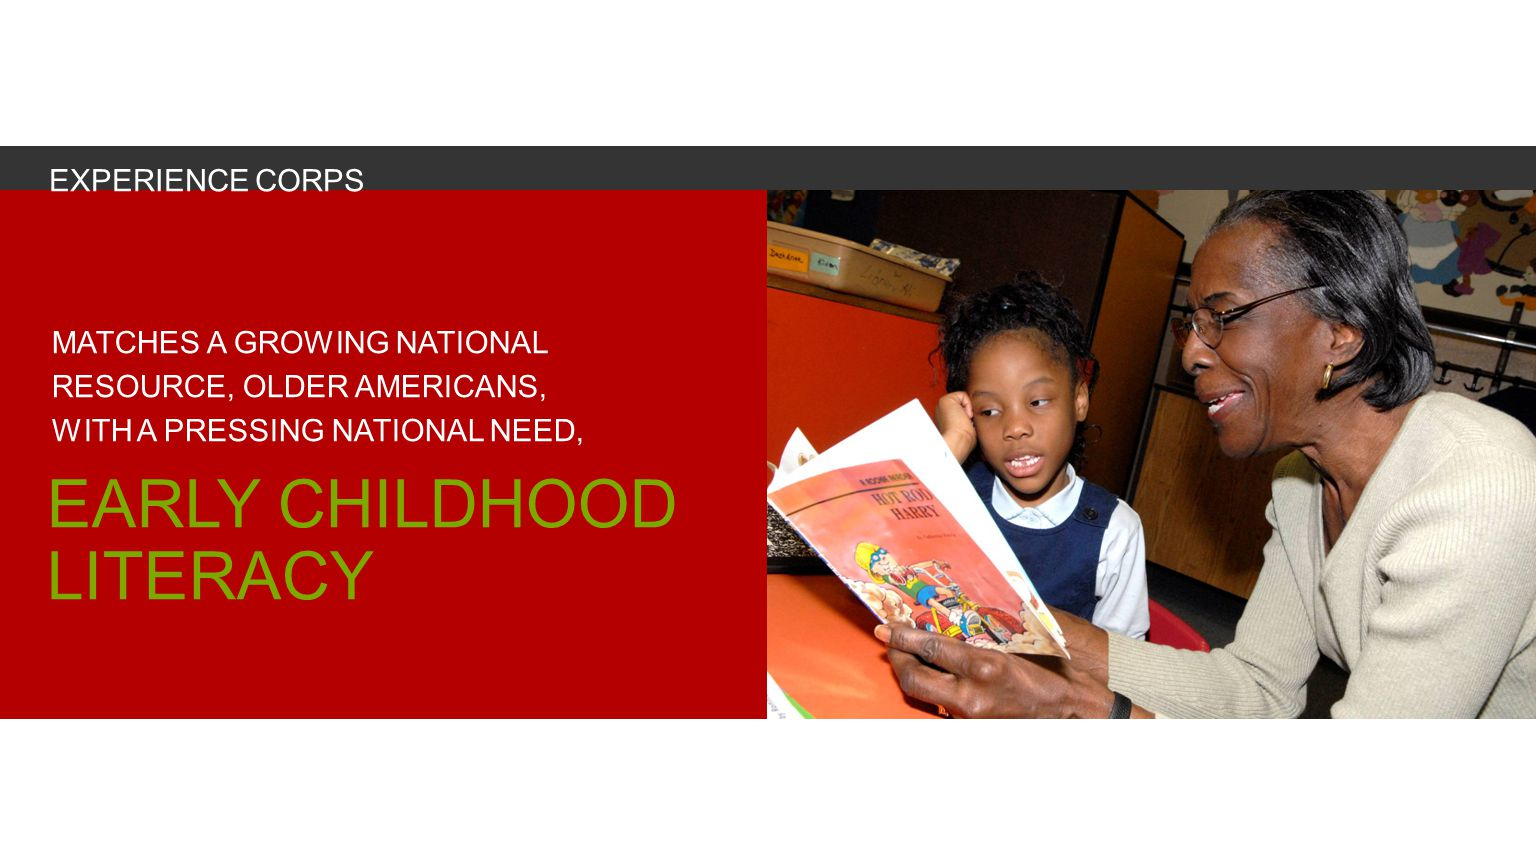 MATCHES A GROWING NATIONAL RESOURCE, OLDER AMERICANS, WITH A PRESSING NATIONAL NEED, EARLY CHILDHOOD LITERACY EXPERIENCE CORPS